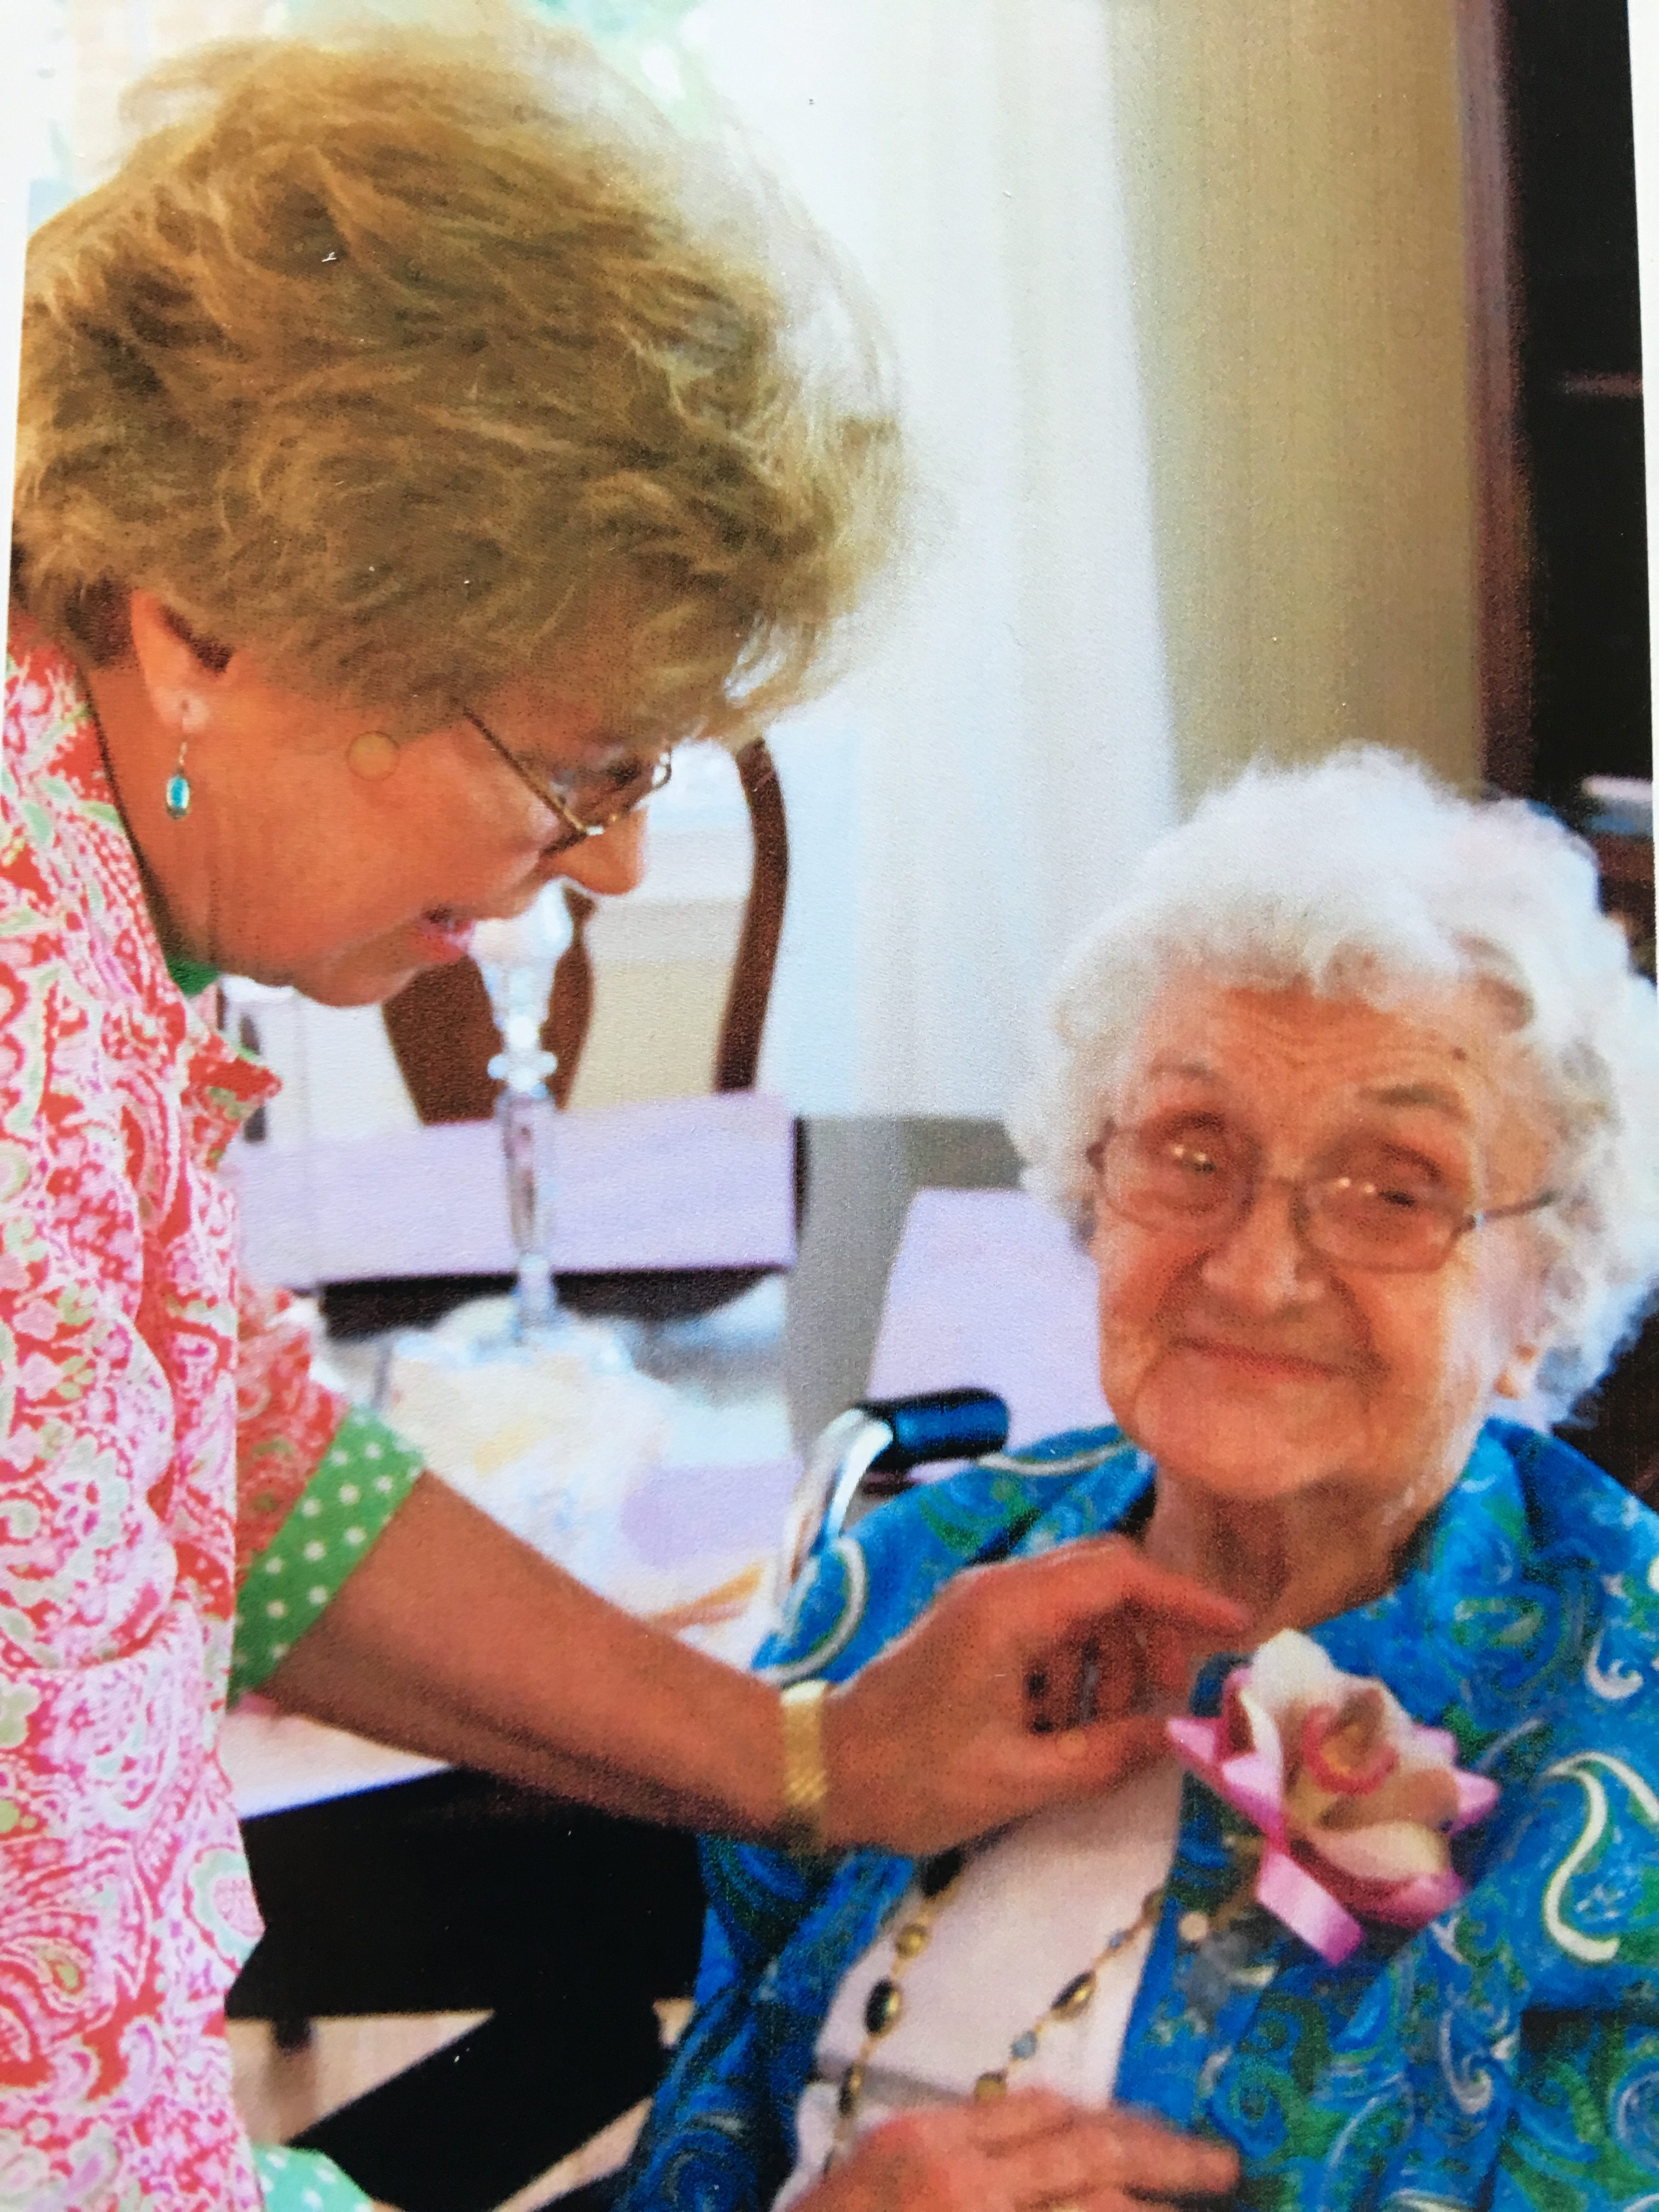 Alzheimer's Disease Caregiver, Advocate and Blogger, Pat White in Conversation with CureTalks